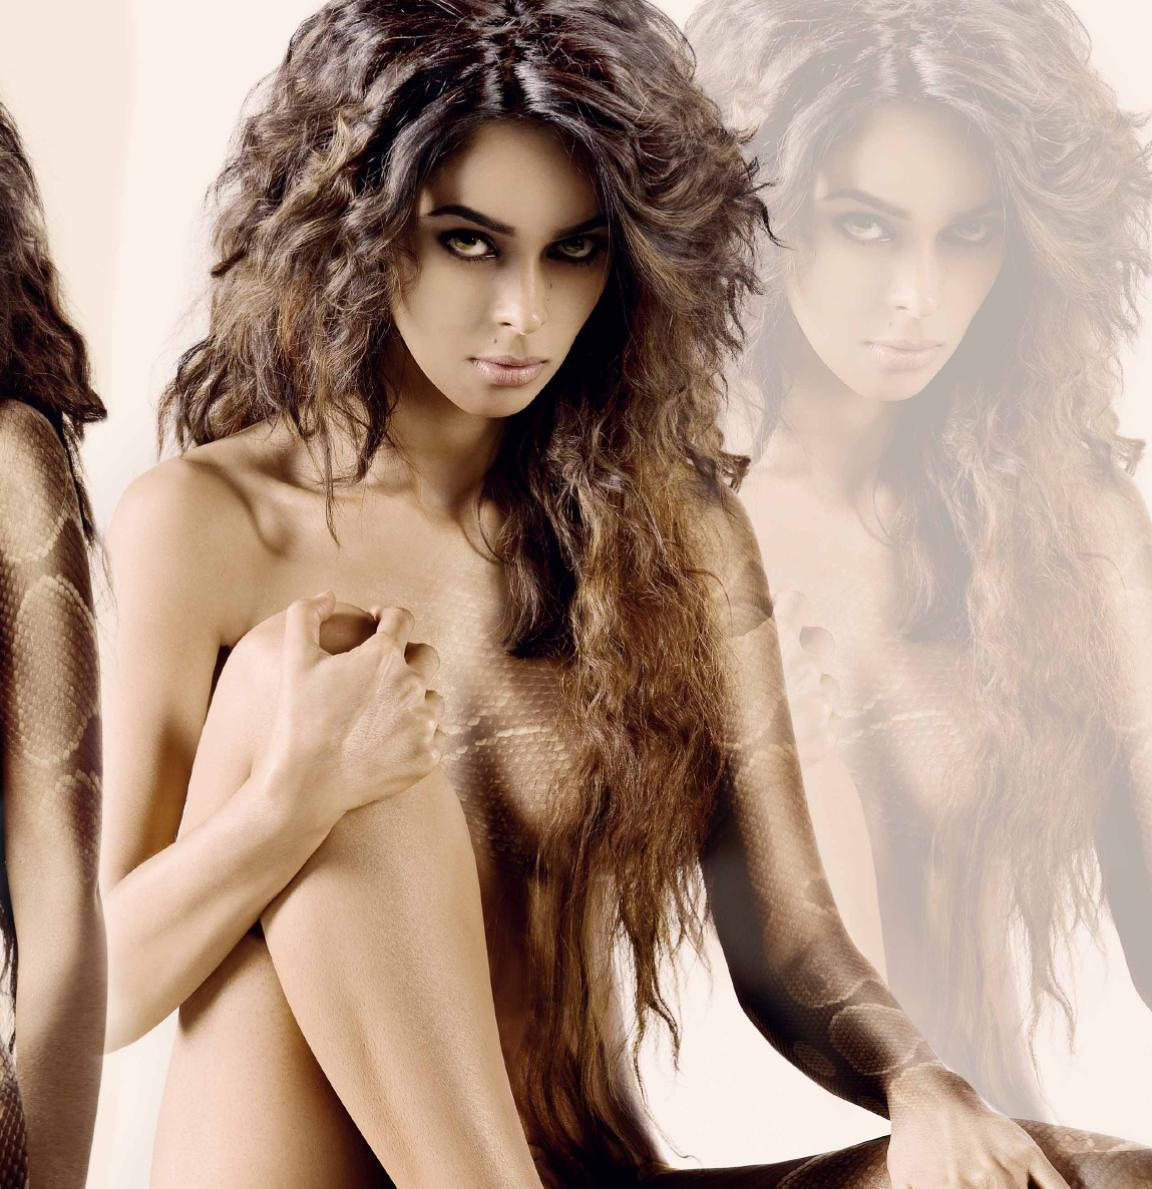 mallika sherawat topless new hot photoshoot unseen wallpaper gallery